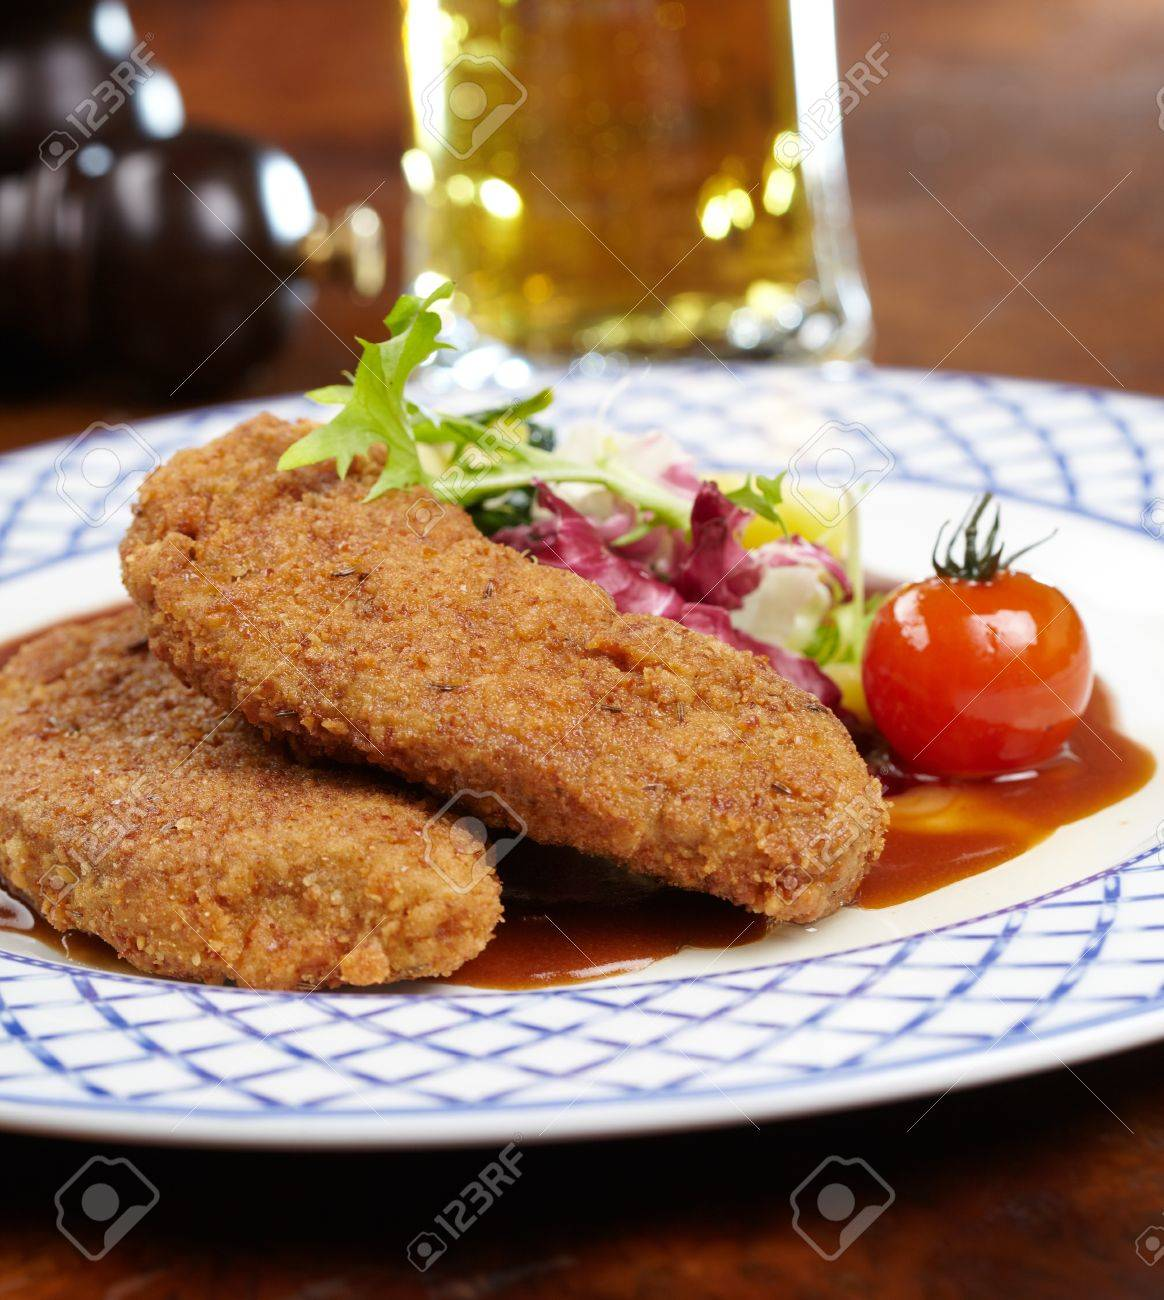 Schnitzel with salad Stock Photo - 19742263